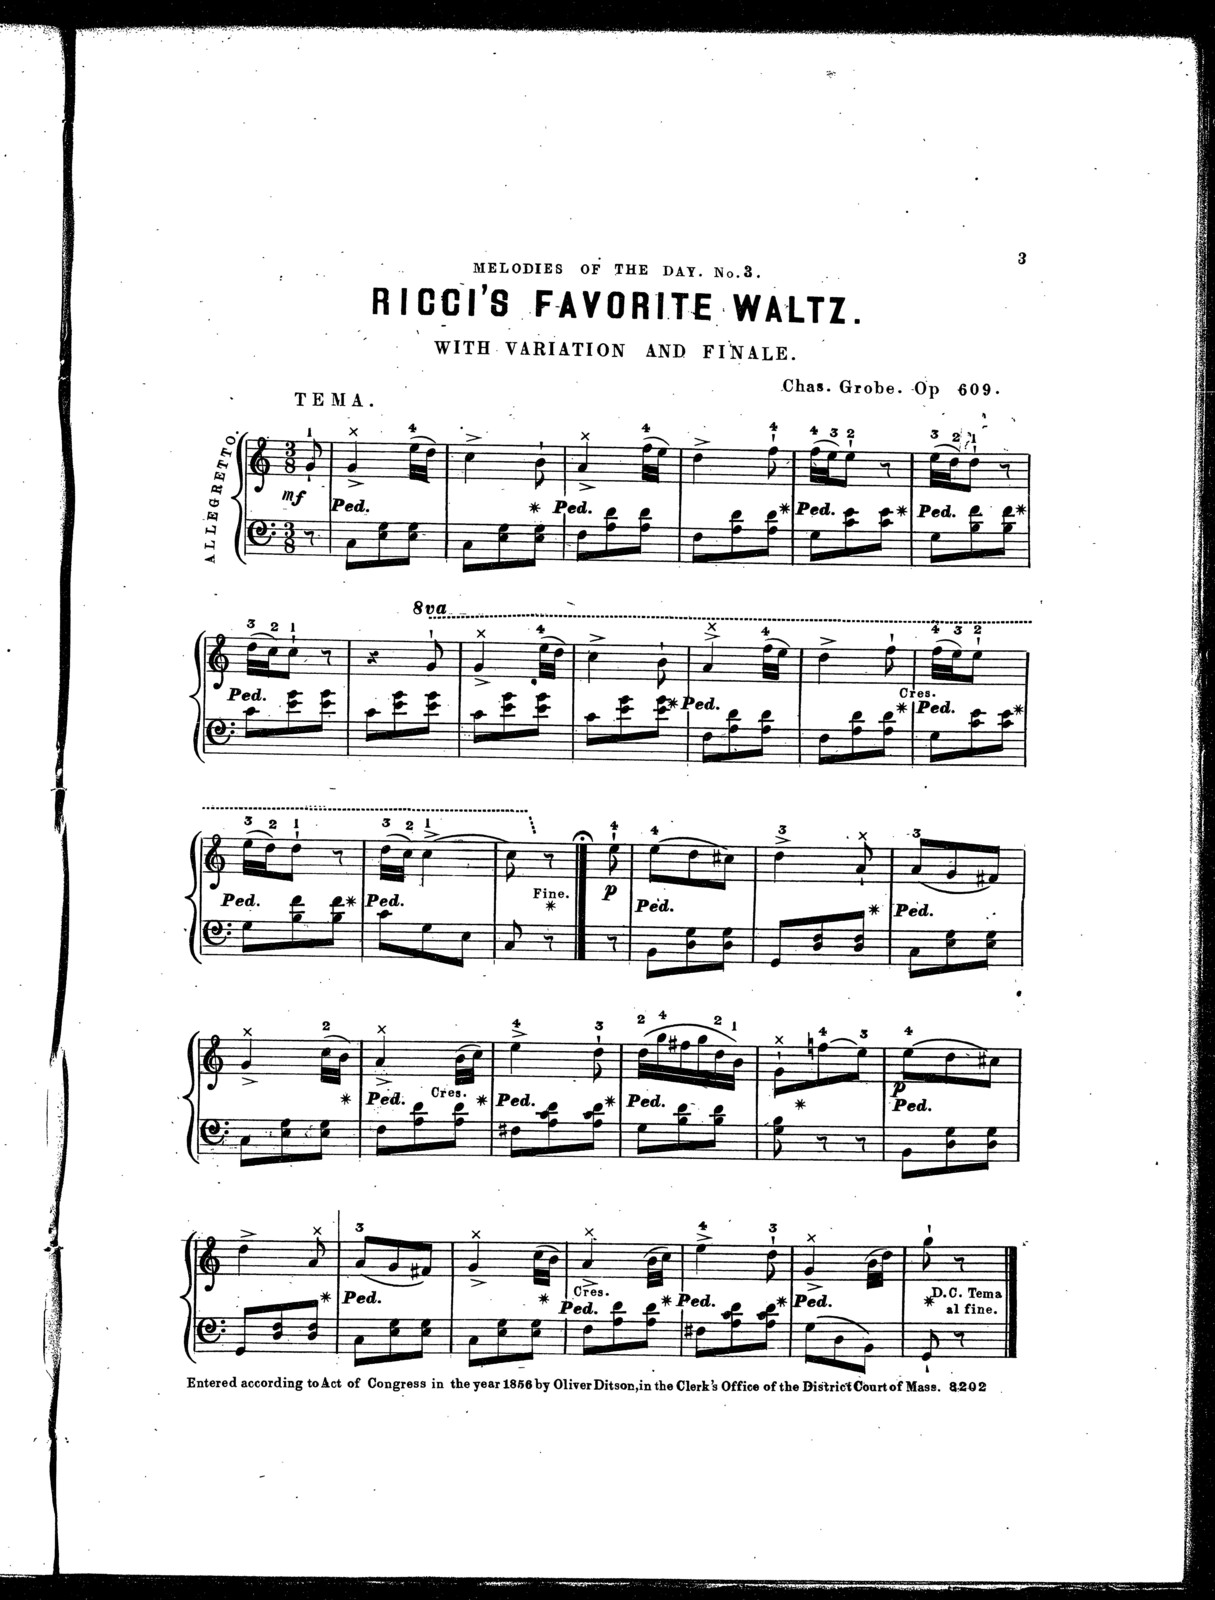 Ricci's favorite waltz, with variation and finale, op. 609